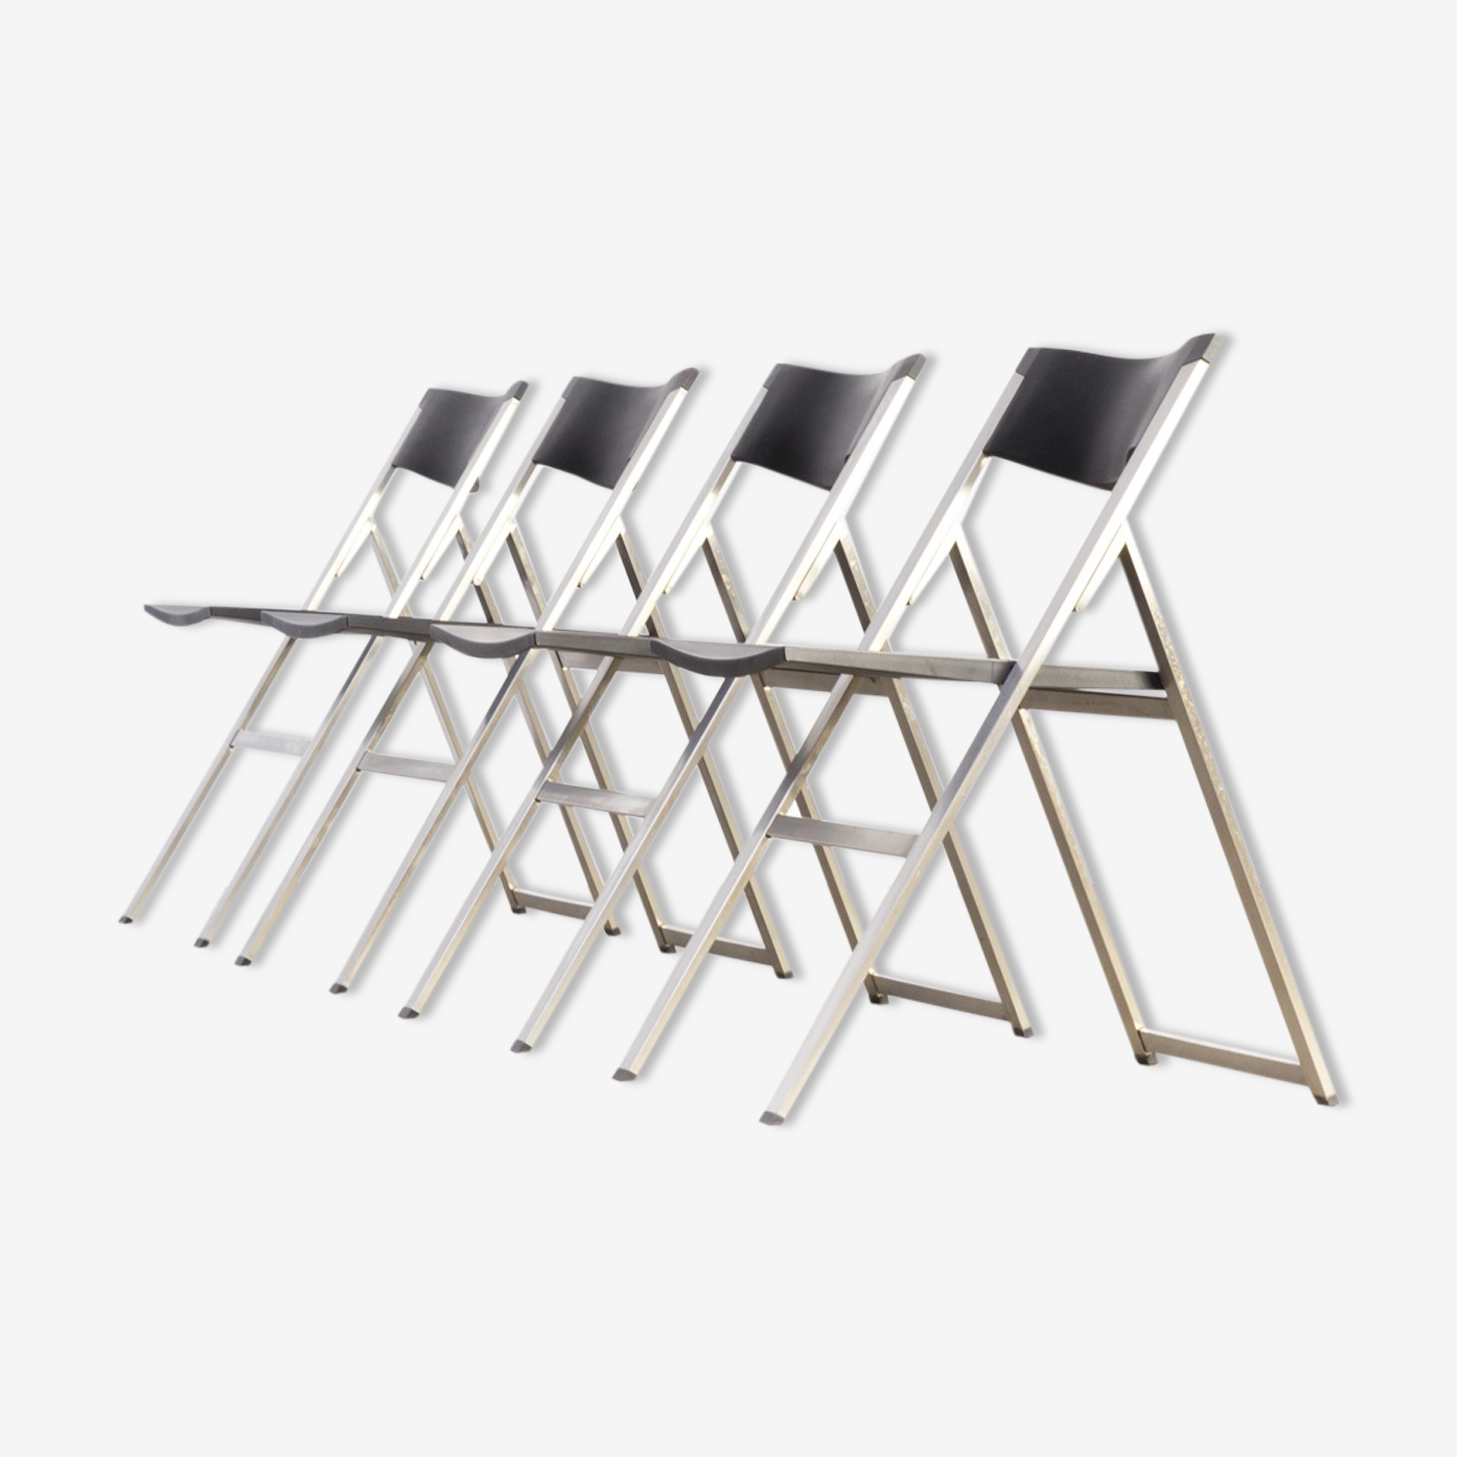 Folding chairs P08 by Justus Kolberg for Tecno